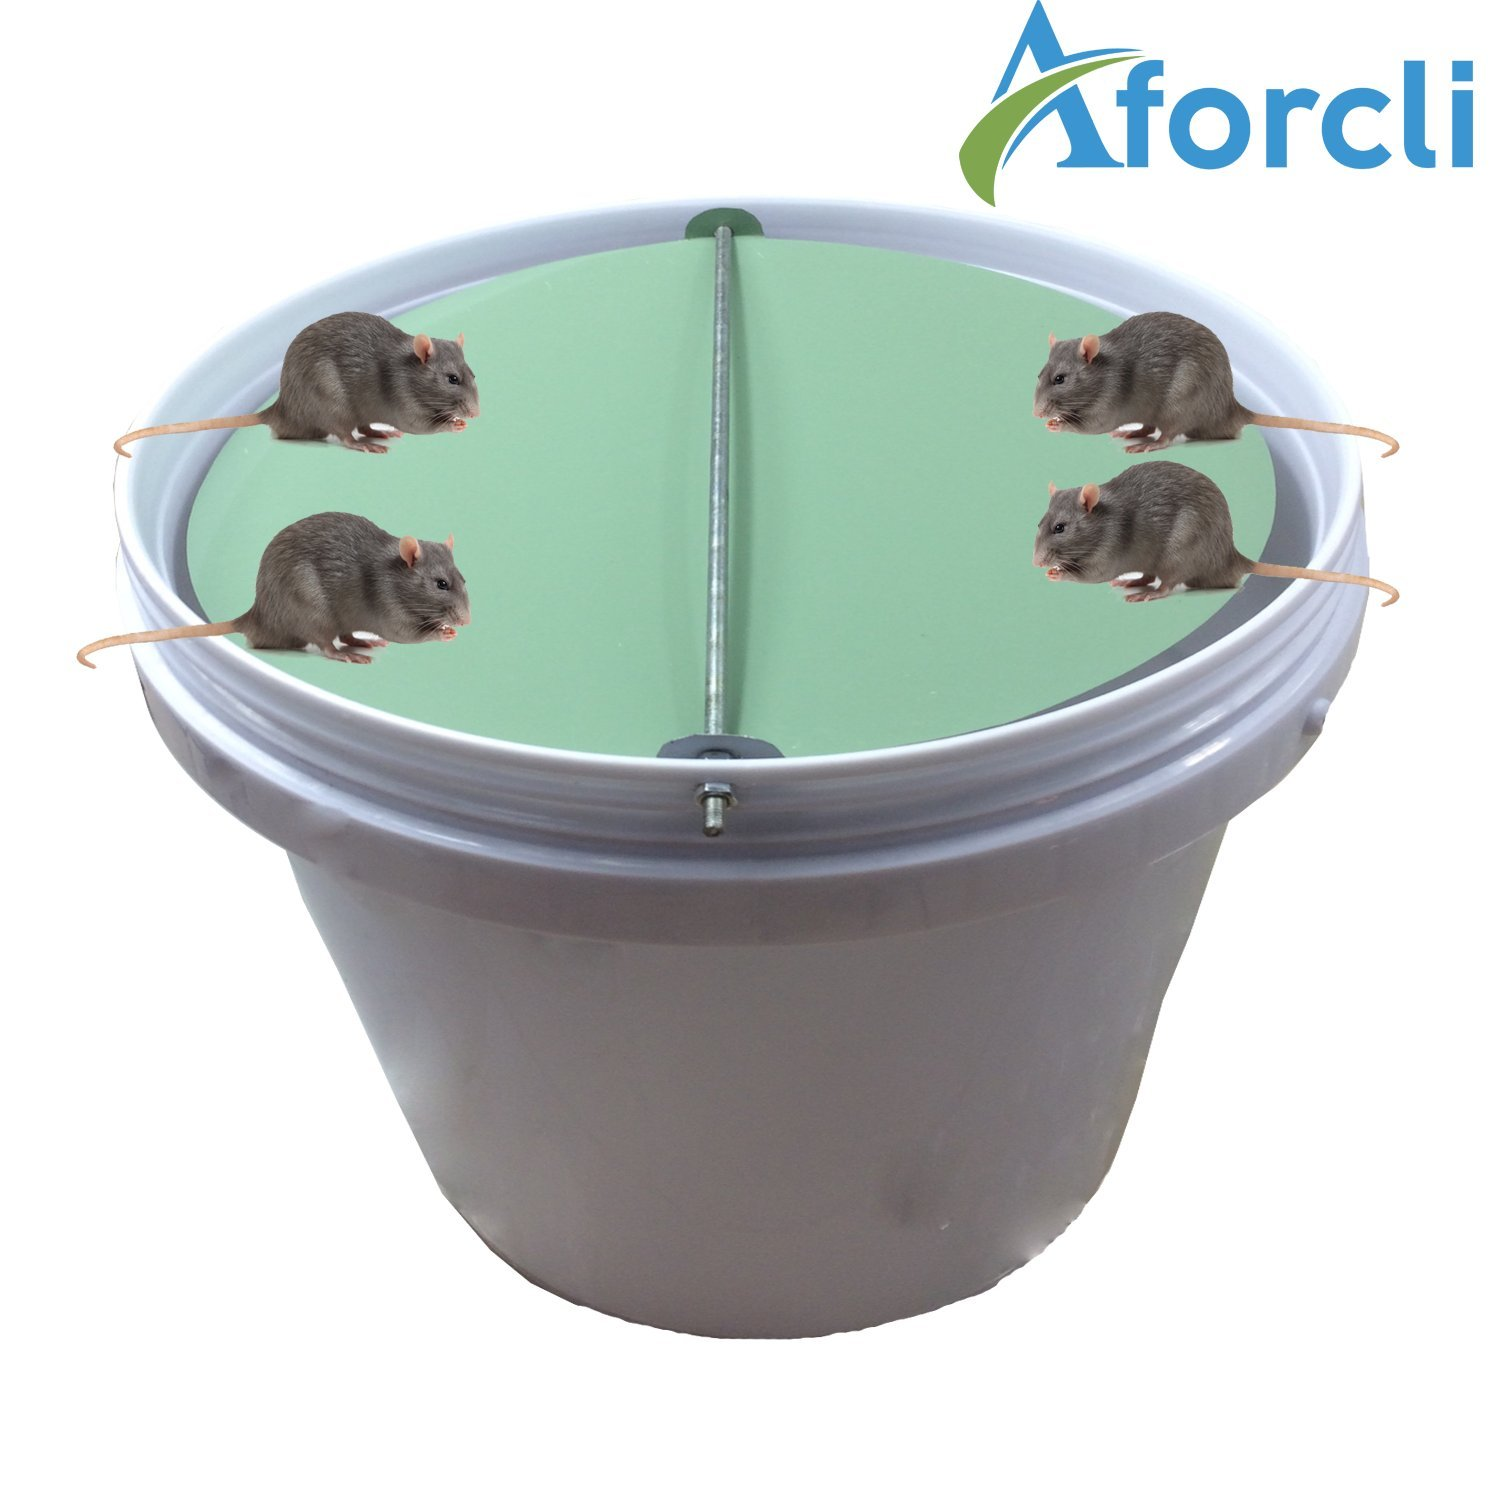 Aforcli  (Version 360 Degrees) (5 Gallon Bucket) - Catch Alive - Humane - Kill/No Kill Trap for Mice,Rats & Other Pests & Rodents